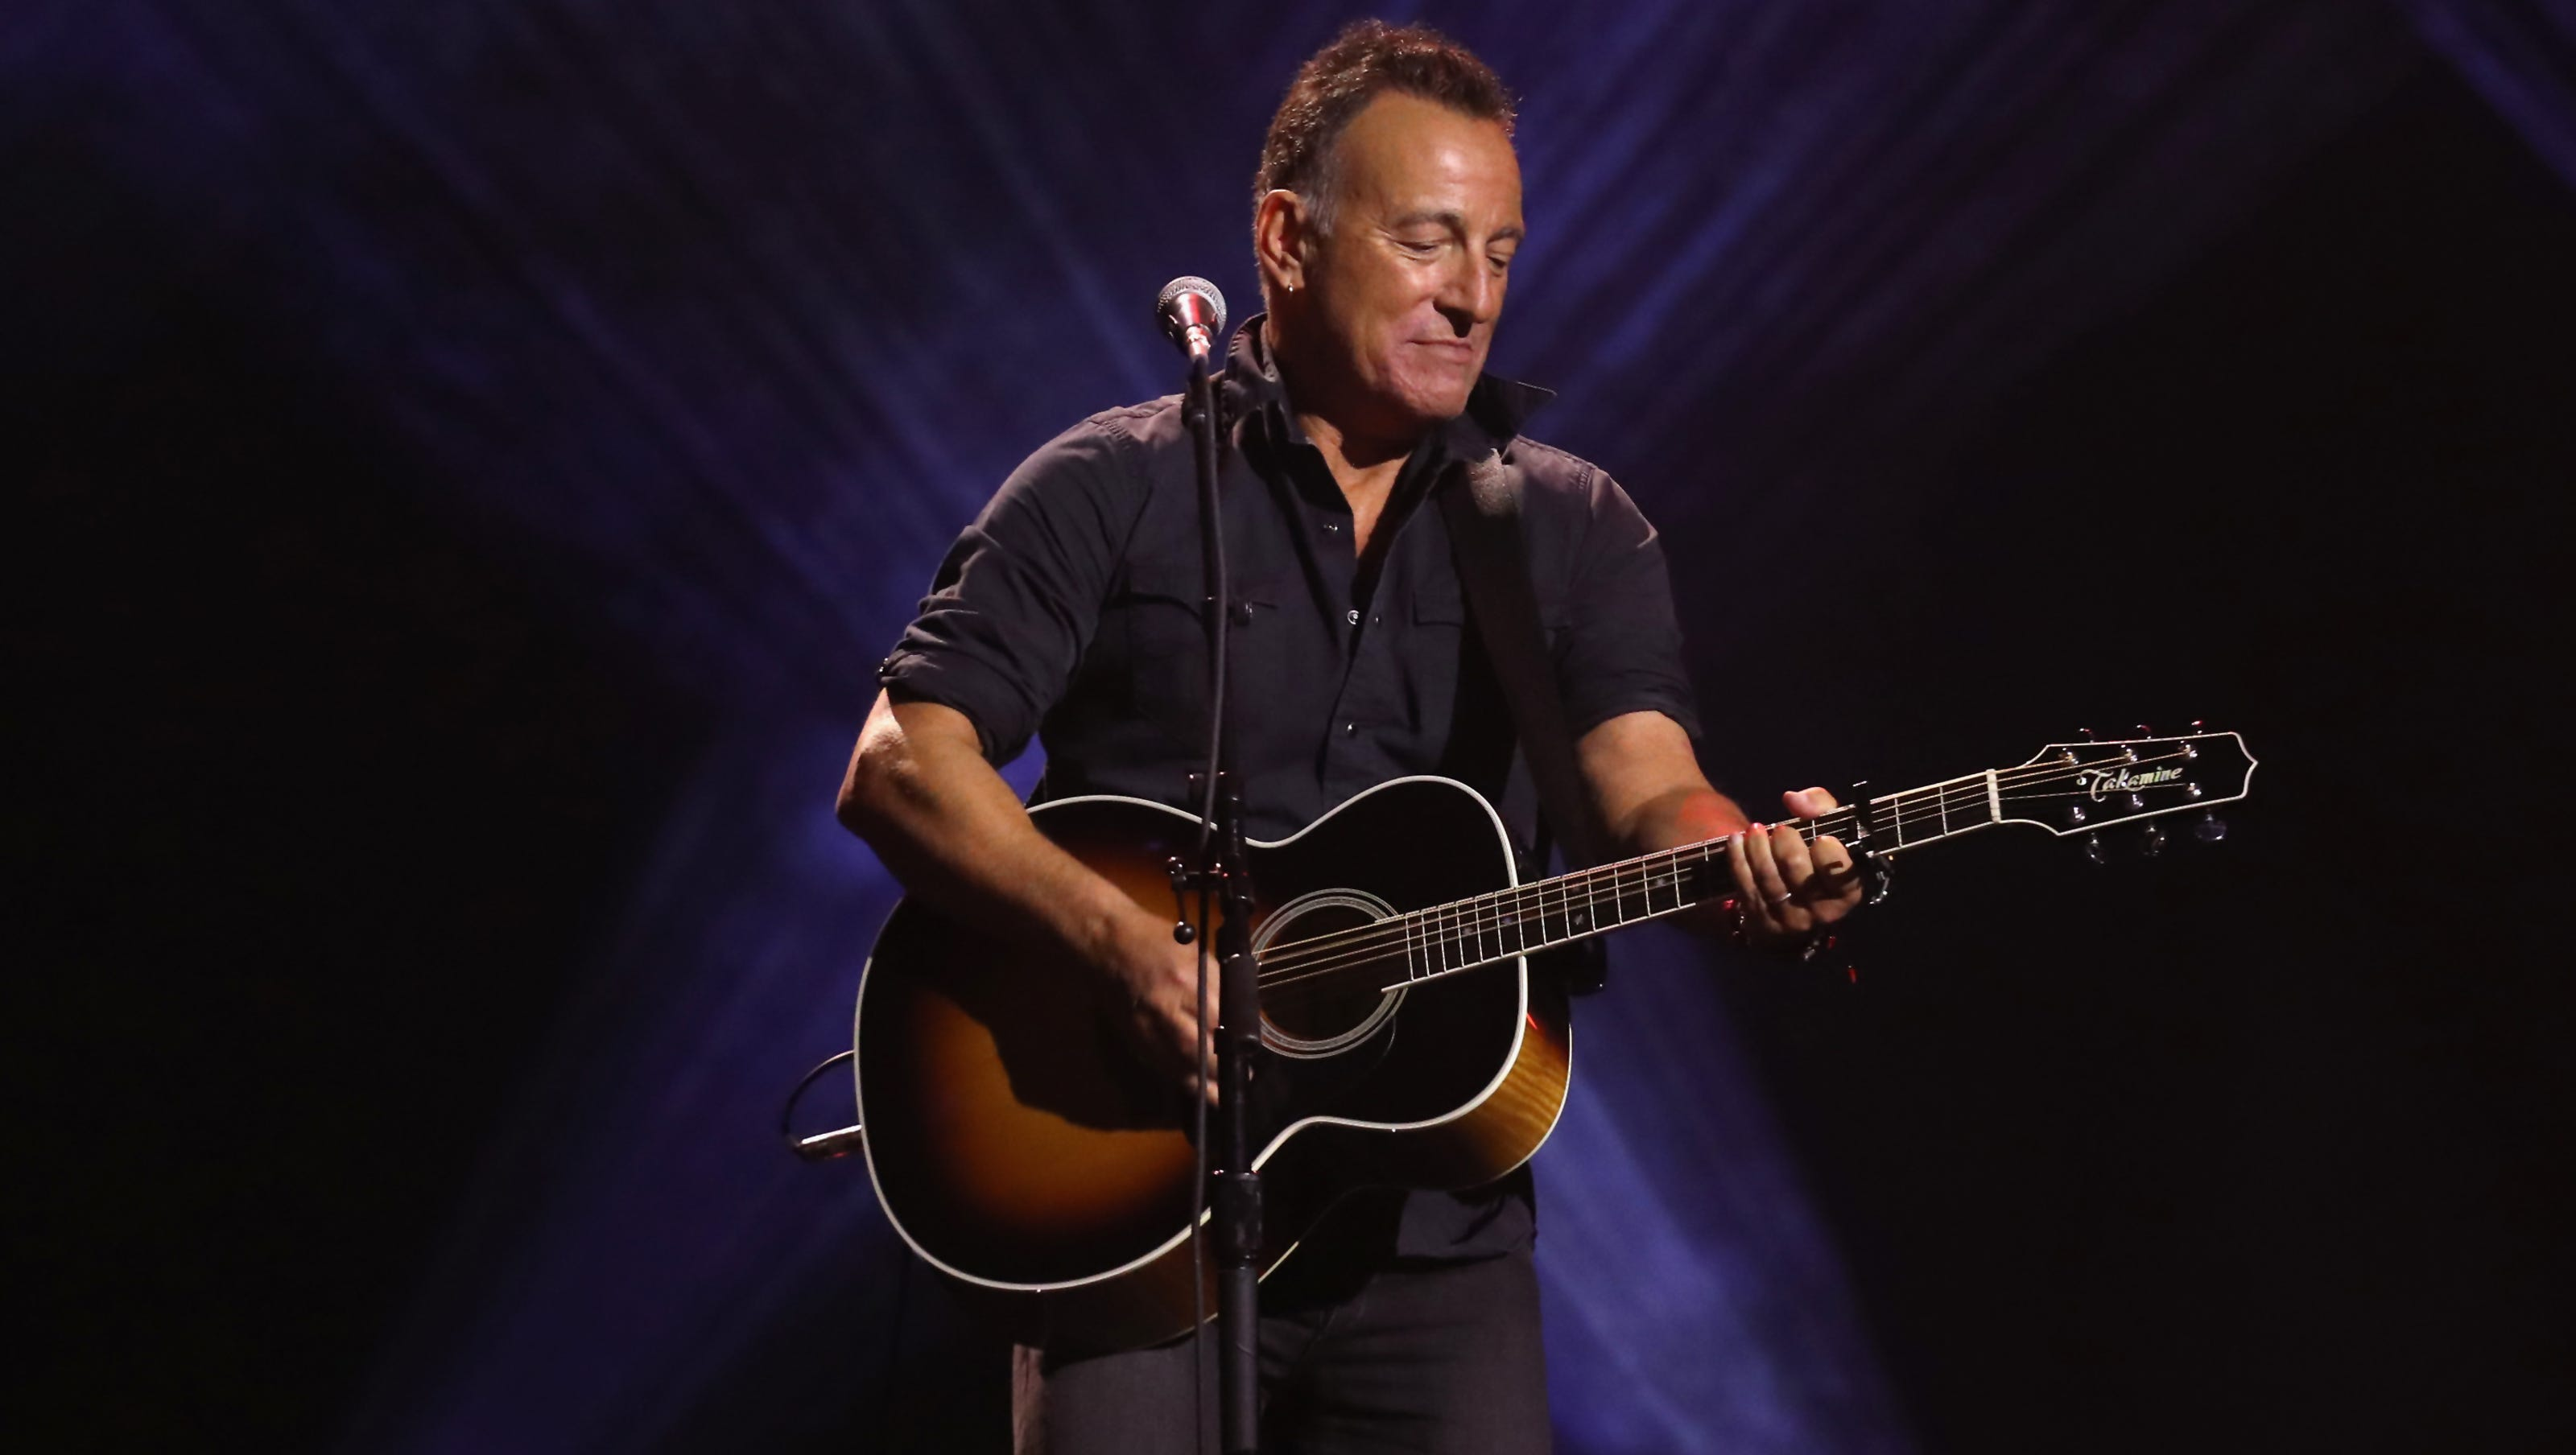 Bruce Springsteen extends Broadway run through Dec. 15 Bruce Springsteen